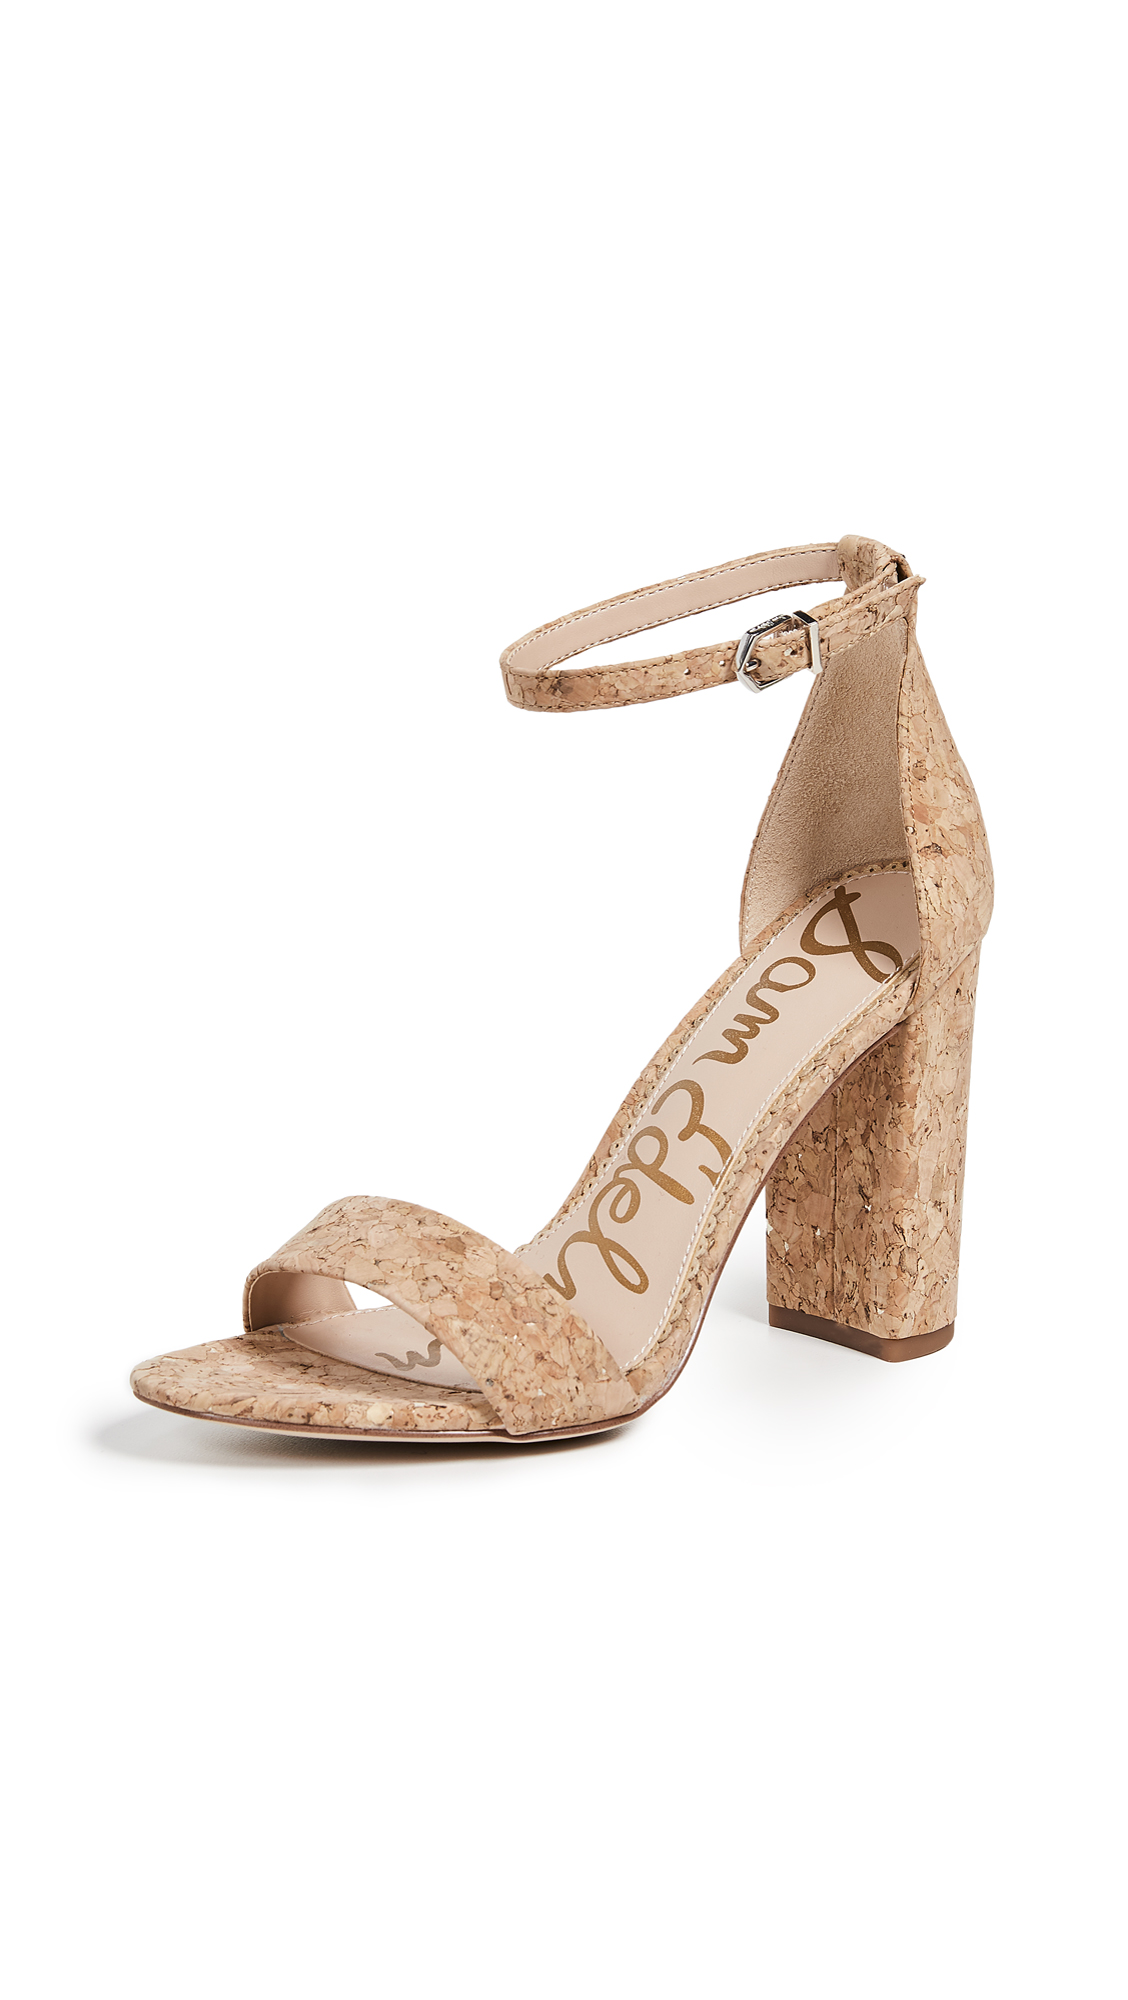 Sam Edelman Yaro Sandals - Natural/Gold